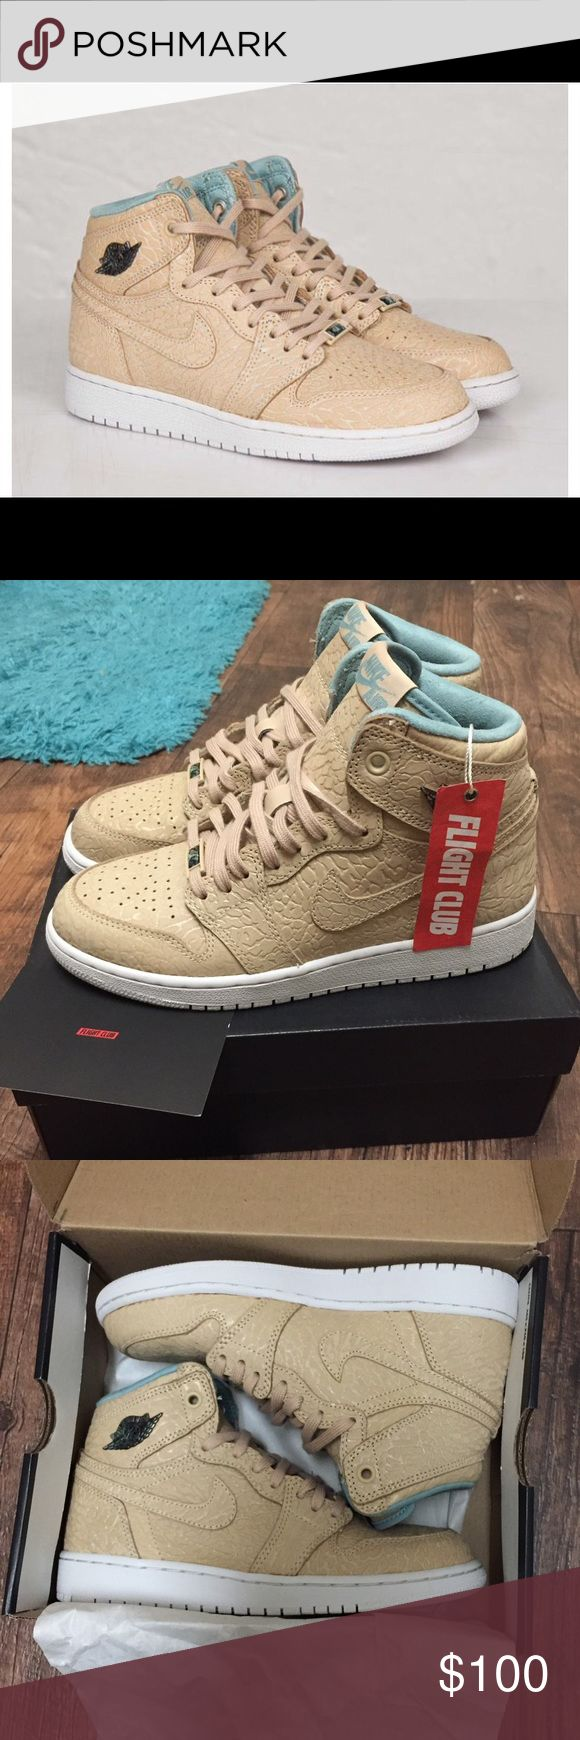 "Air Jordan 1 Retro High GS ""Pearl"" Brand new from Flight Club with original box. Color: Sand Dune/Cannon - Flat Gold Nike Shoes Sneakers"